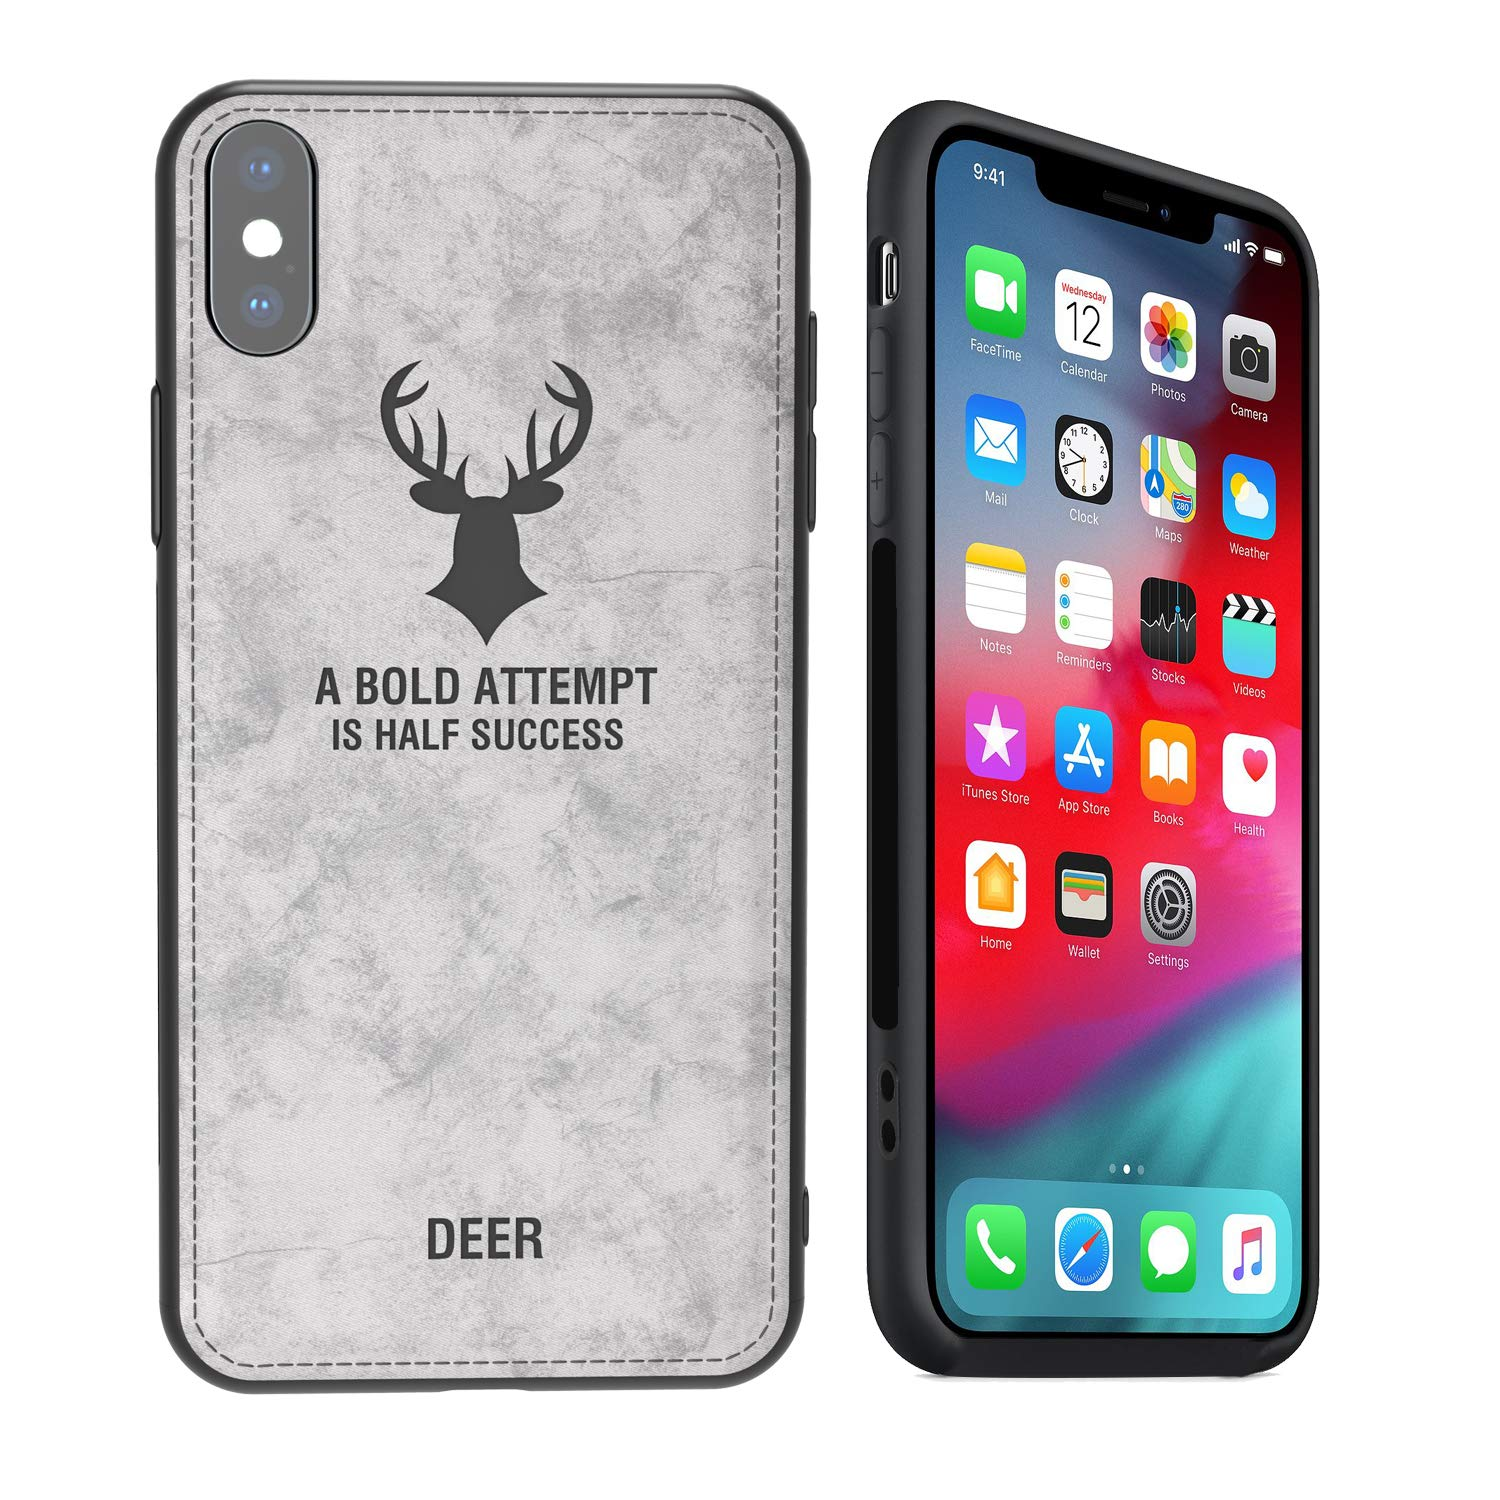 kenke iPhone Xs case,Ultra-Thin Nordic Style Retro Deer Pattern Leather case for Apple iPhone Xs Cover,Hybrid Protection Silicone Shock-Absorbent Soft ...